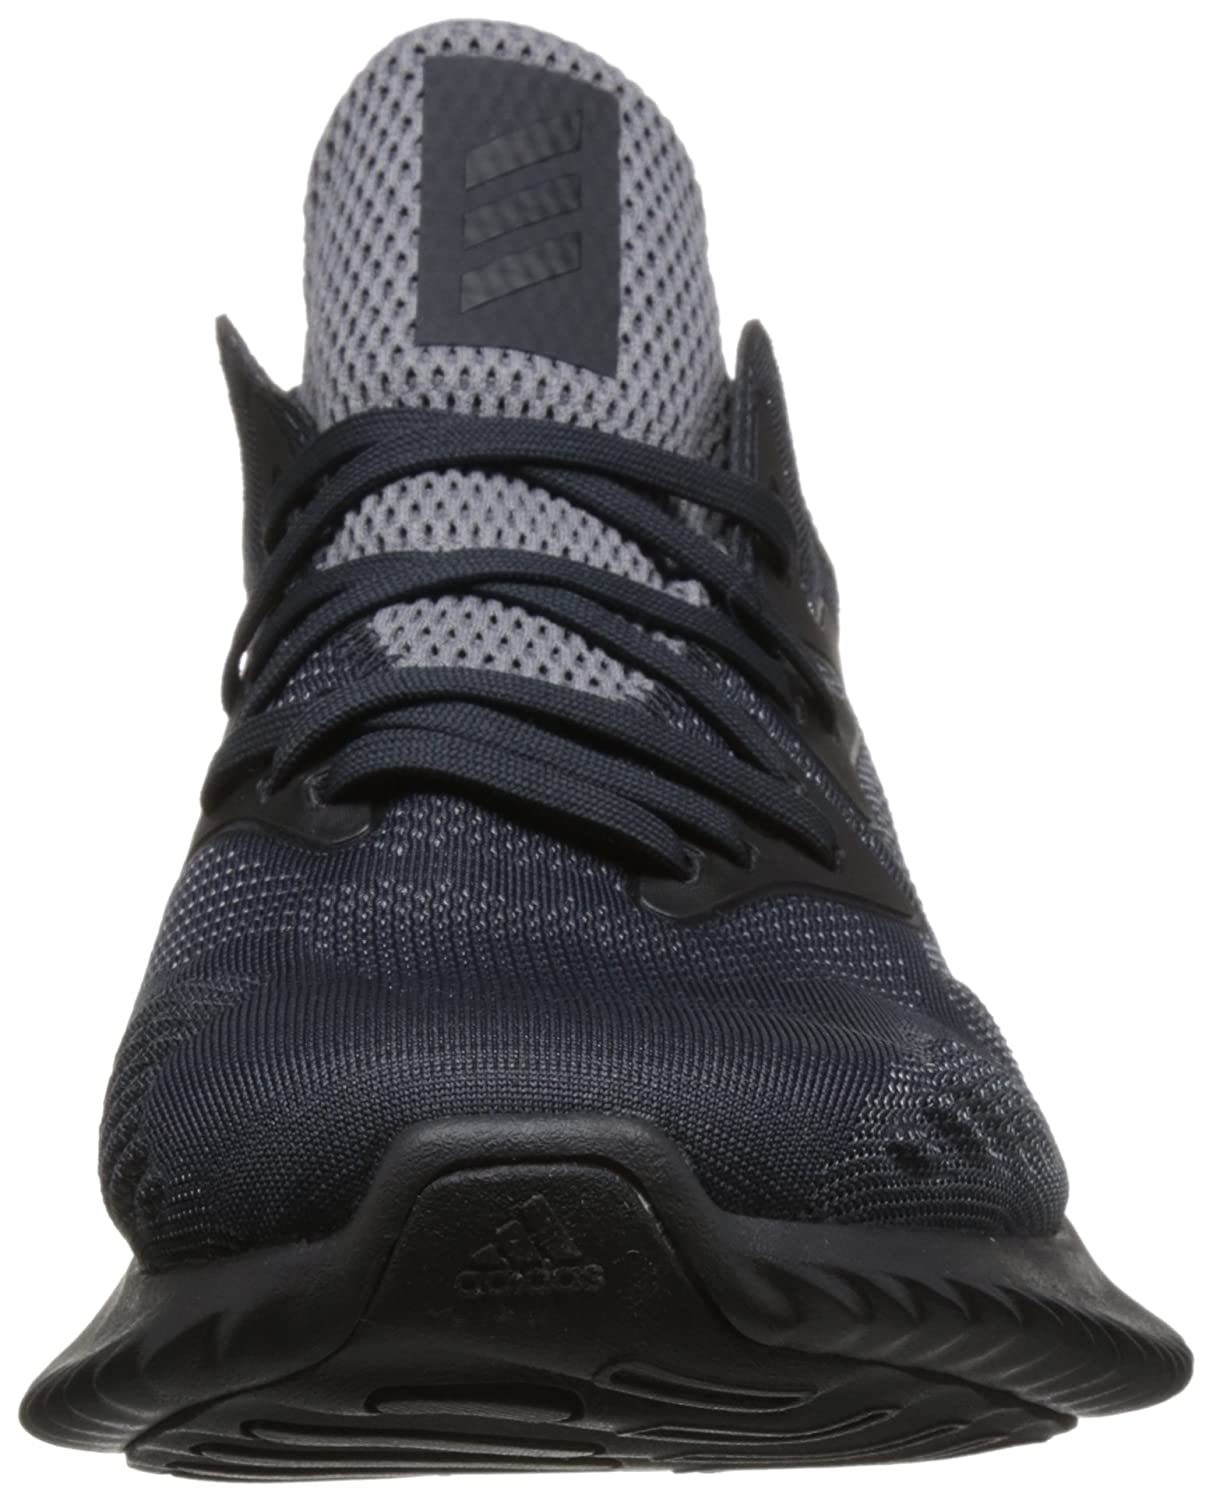 1d071ad08f08f Adidas Men s Alphabounce Beyond M Running Shoes  Buy Online at Low Prices  in India - Amazon.in